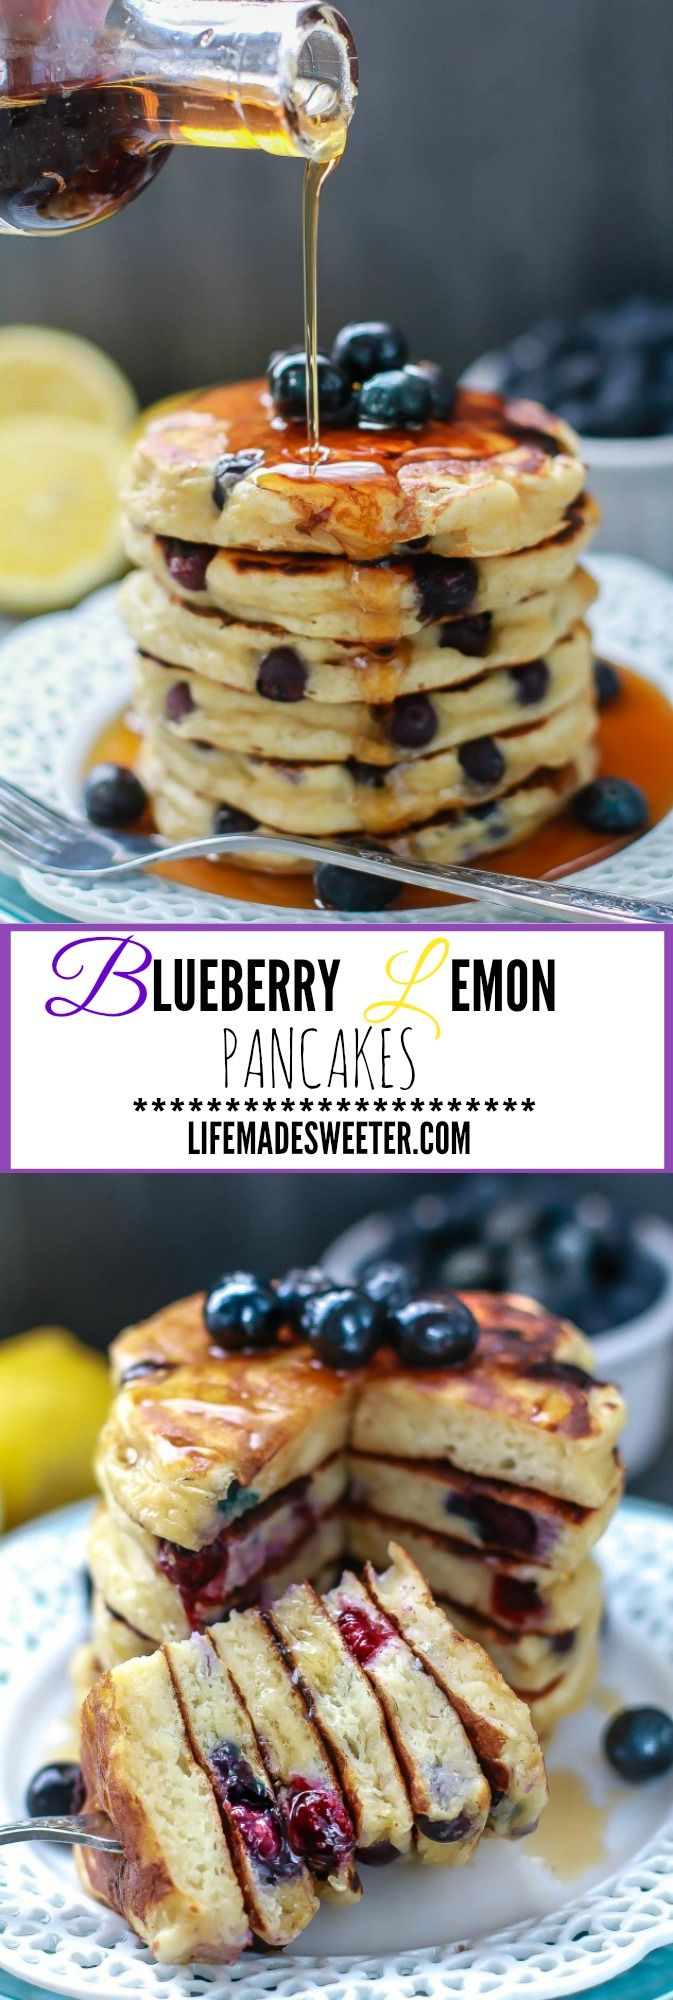 Fluffy Blueberry Lemon Pancakes are the perfect way to start the weekend! Made with Greek yogurt and so soft and melt-in your mouth with delicious blueberries in every bite. Best for lazy Sundays or any old day!